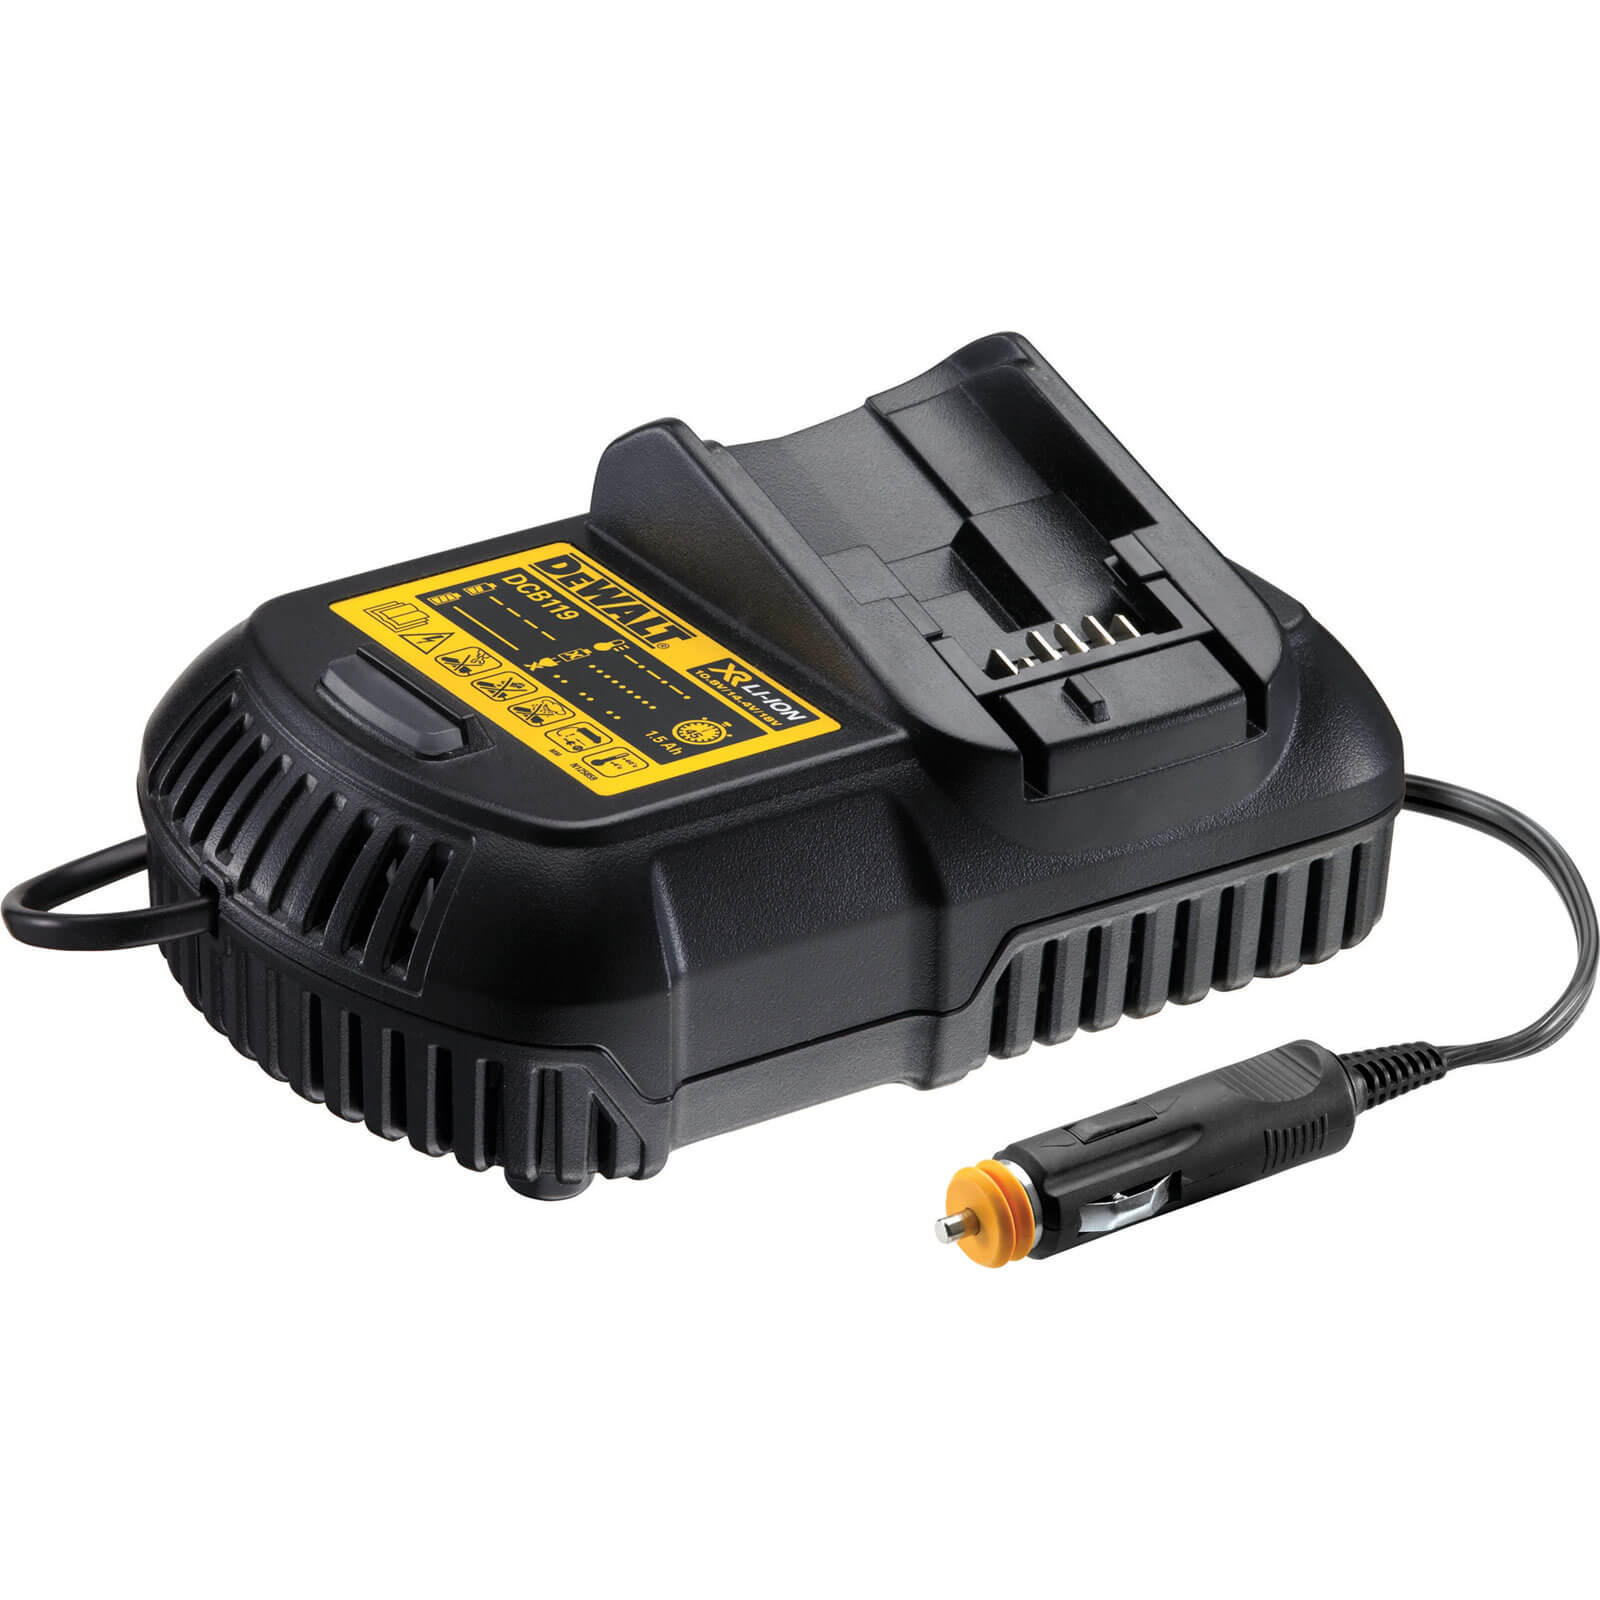 DeWalt DCB119 XR 18v Cordless Liion Car Battery Charger 12v